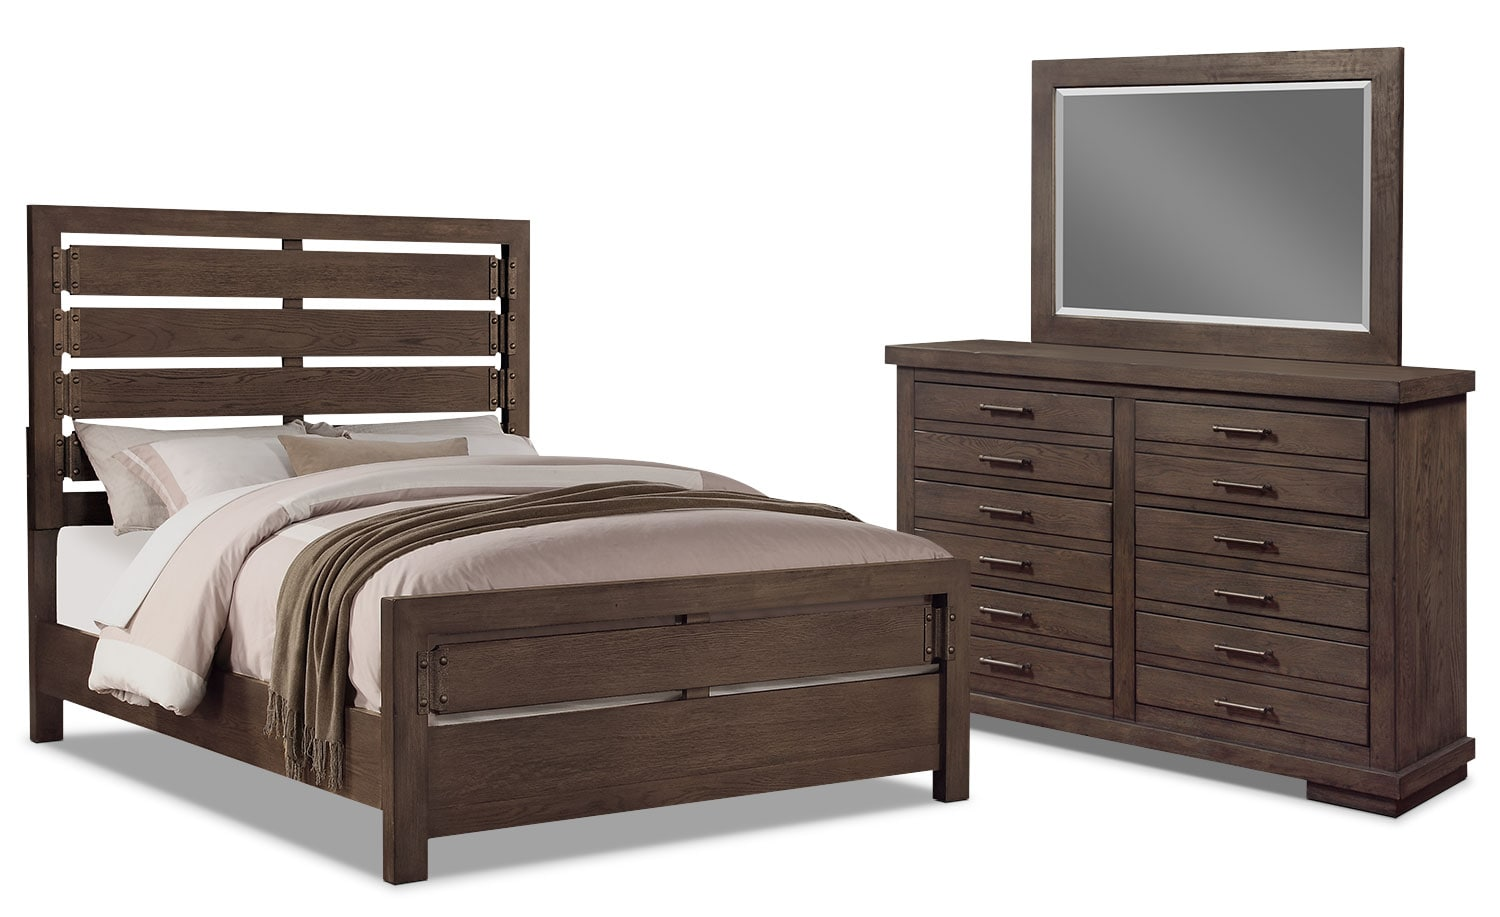 Revolution 5 piece king bedroom package the brick for Bedroom furniture packages